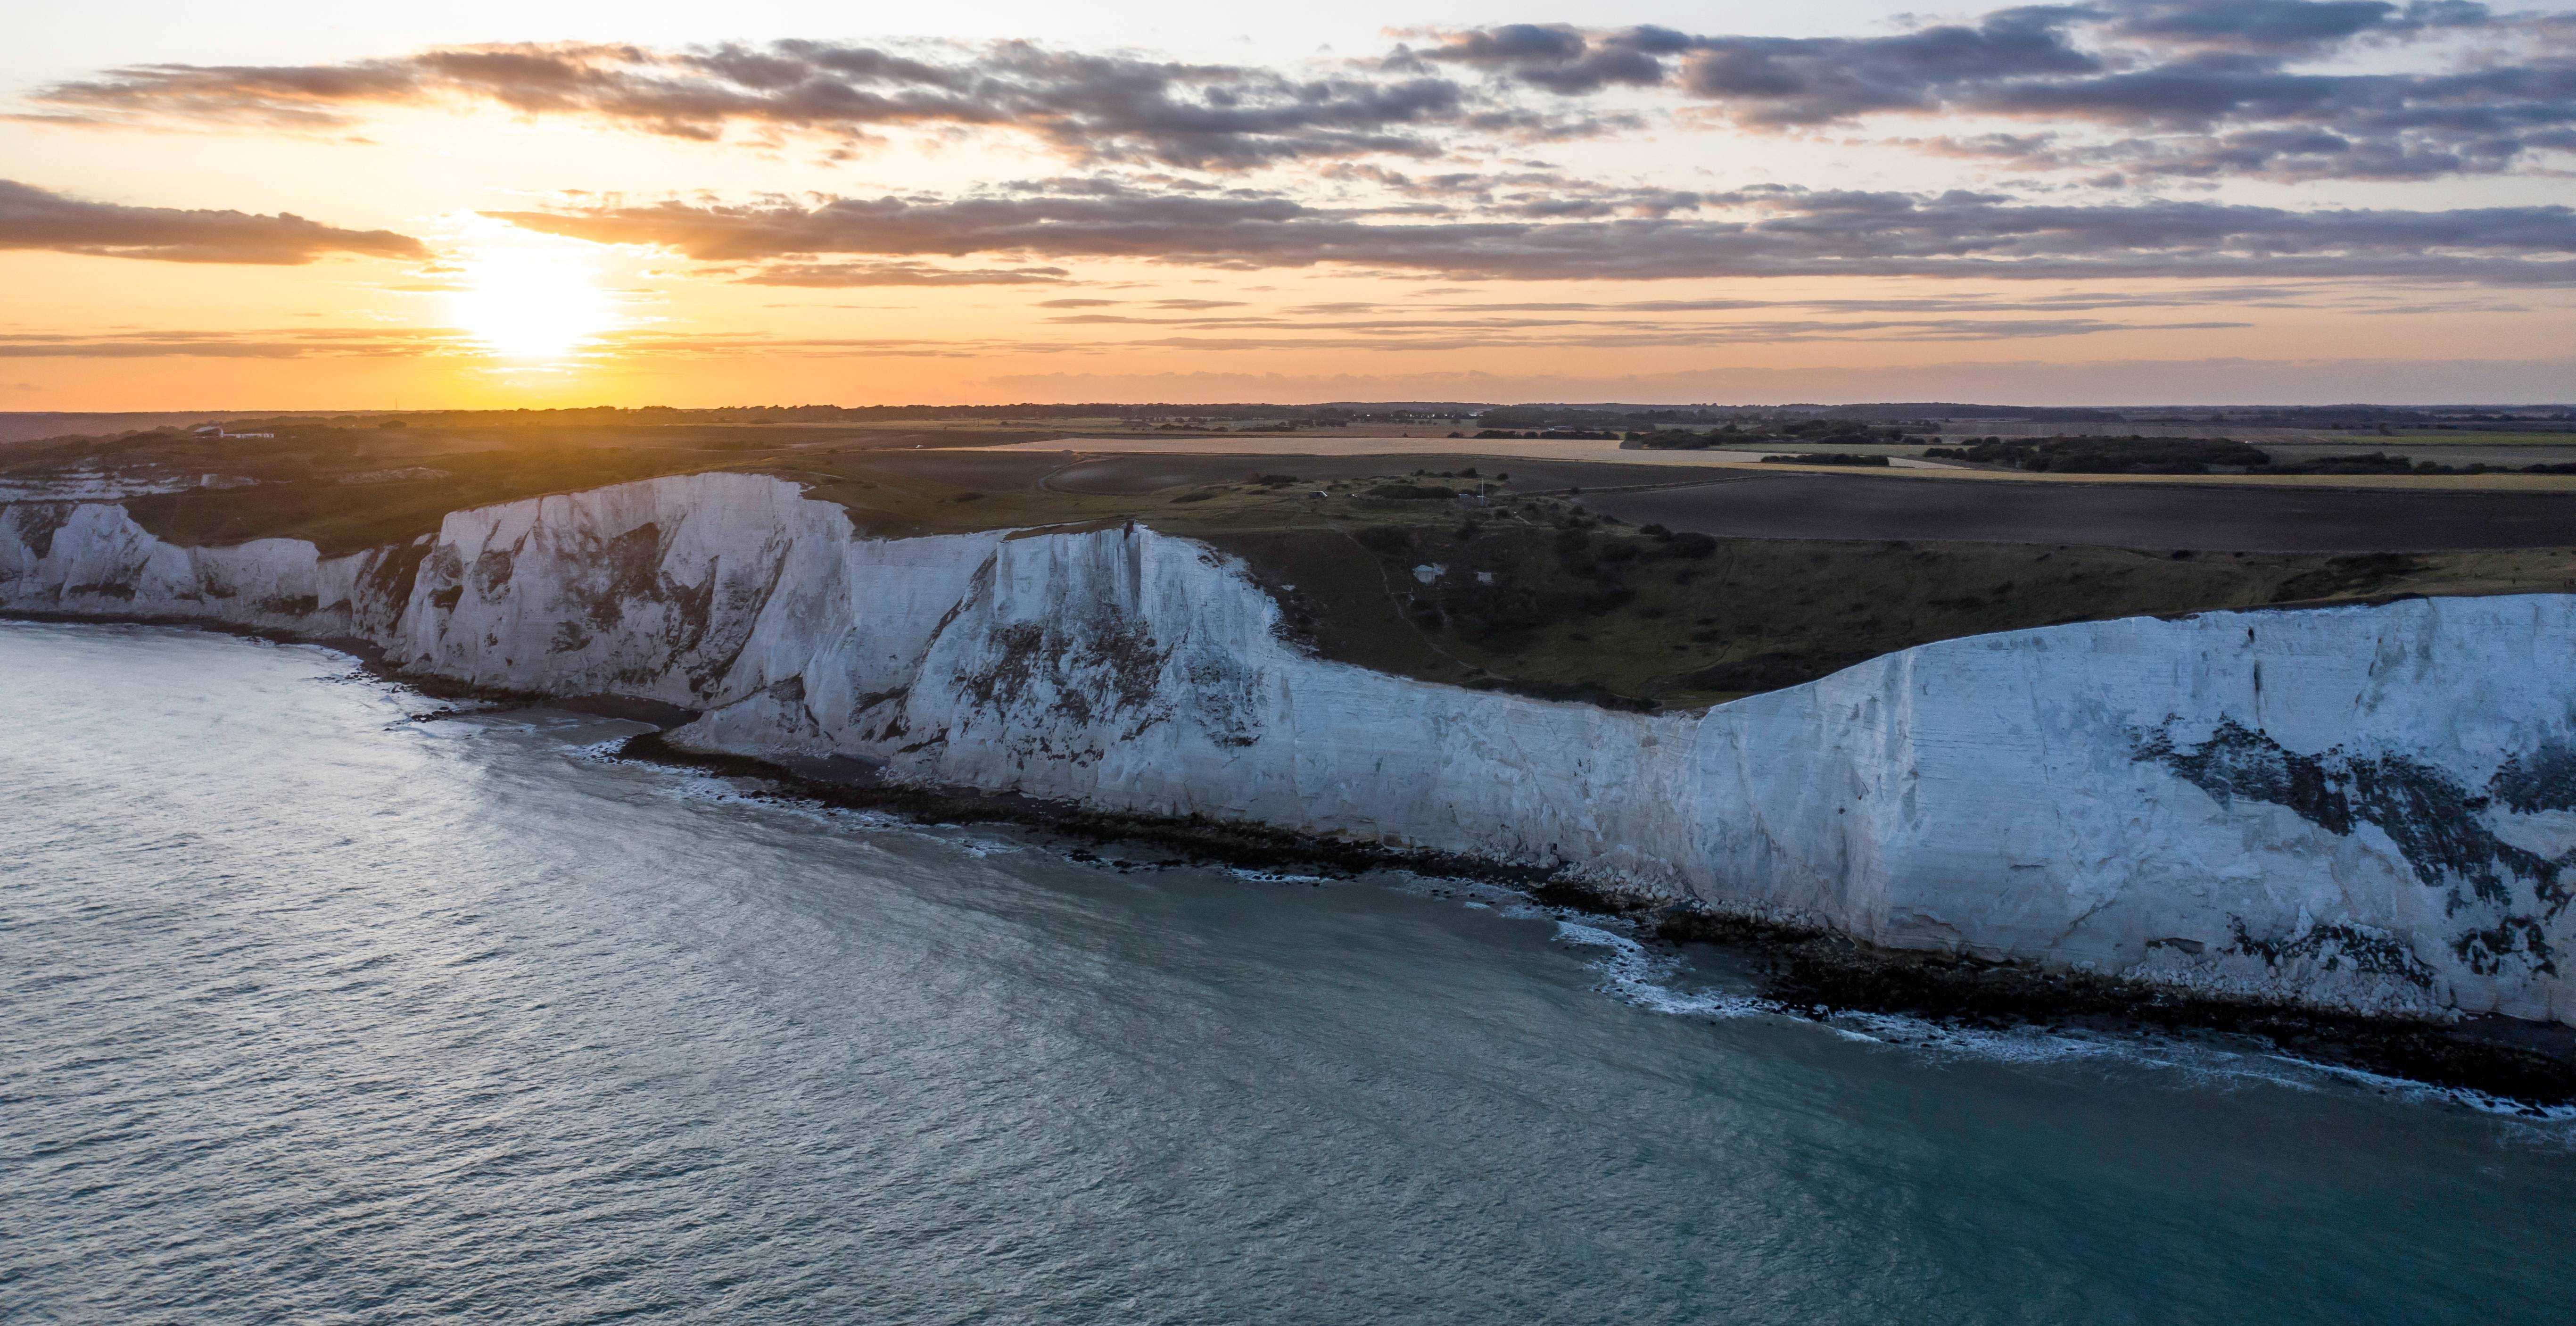 White Cliffs of Dover Dover UK